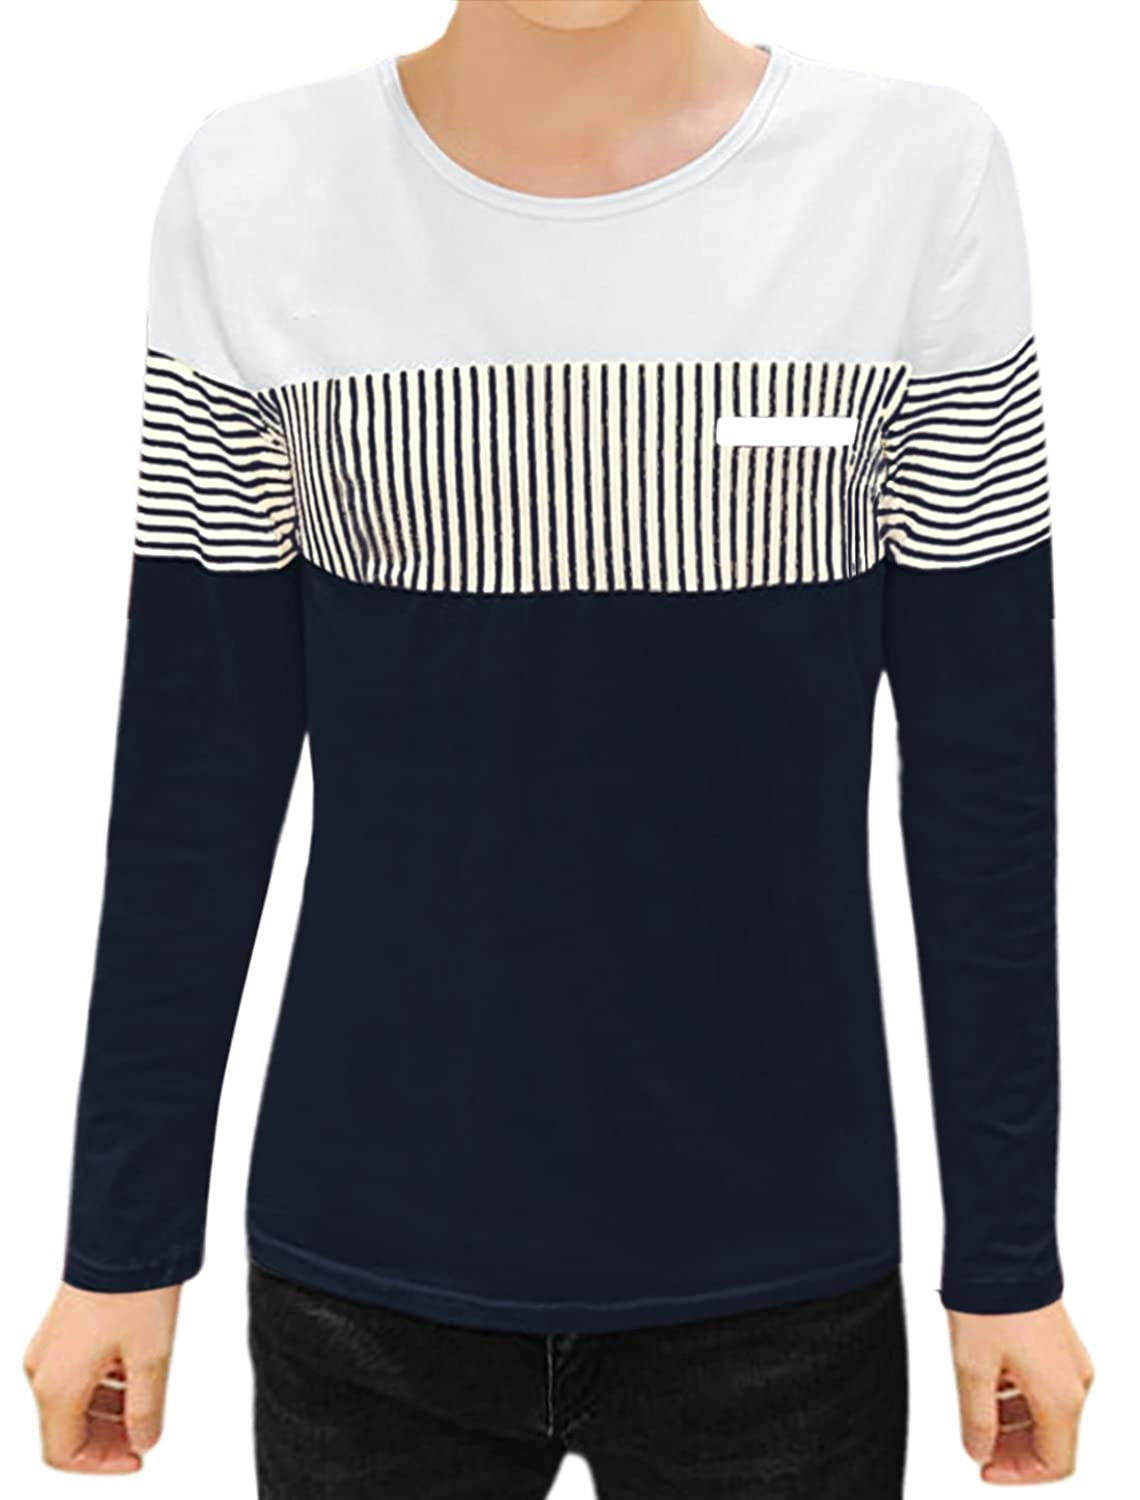 Men Long Sleeves Round Neck Contrast Color Stripes Tee Shirt